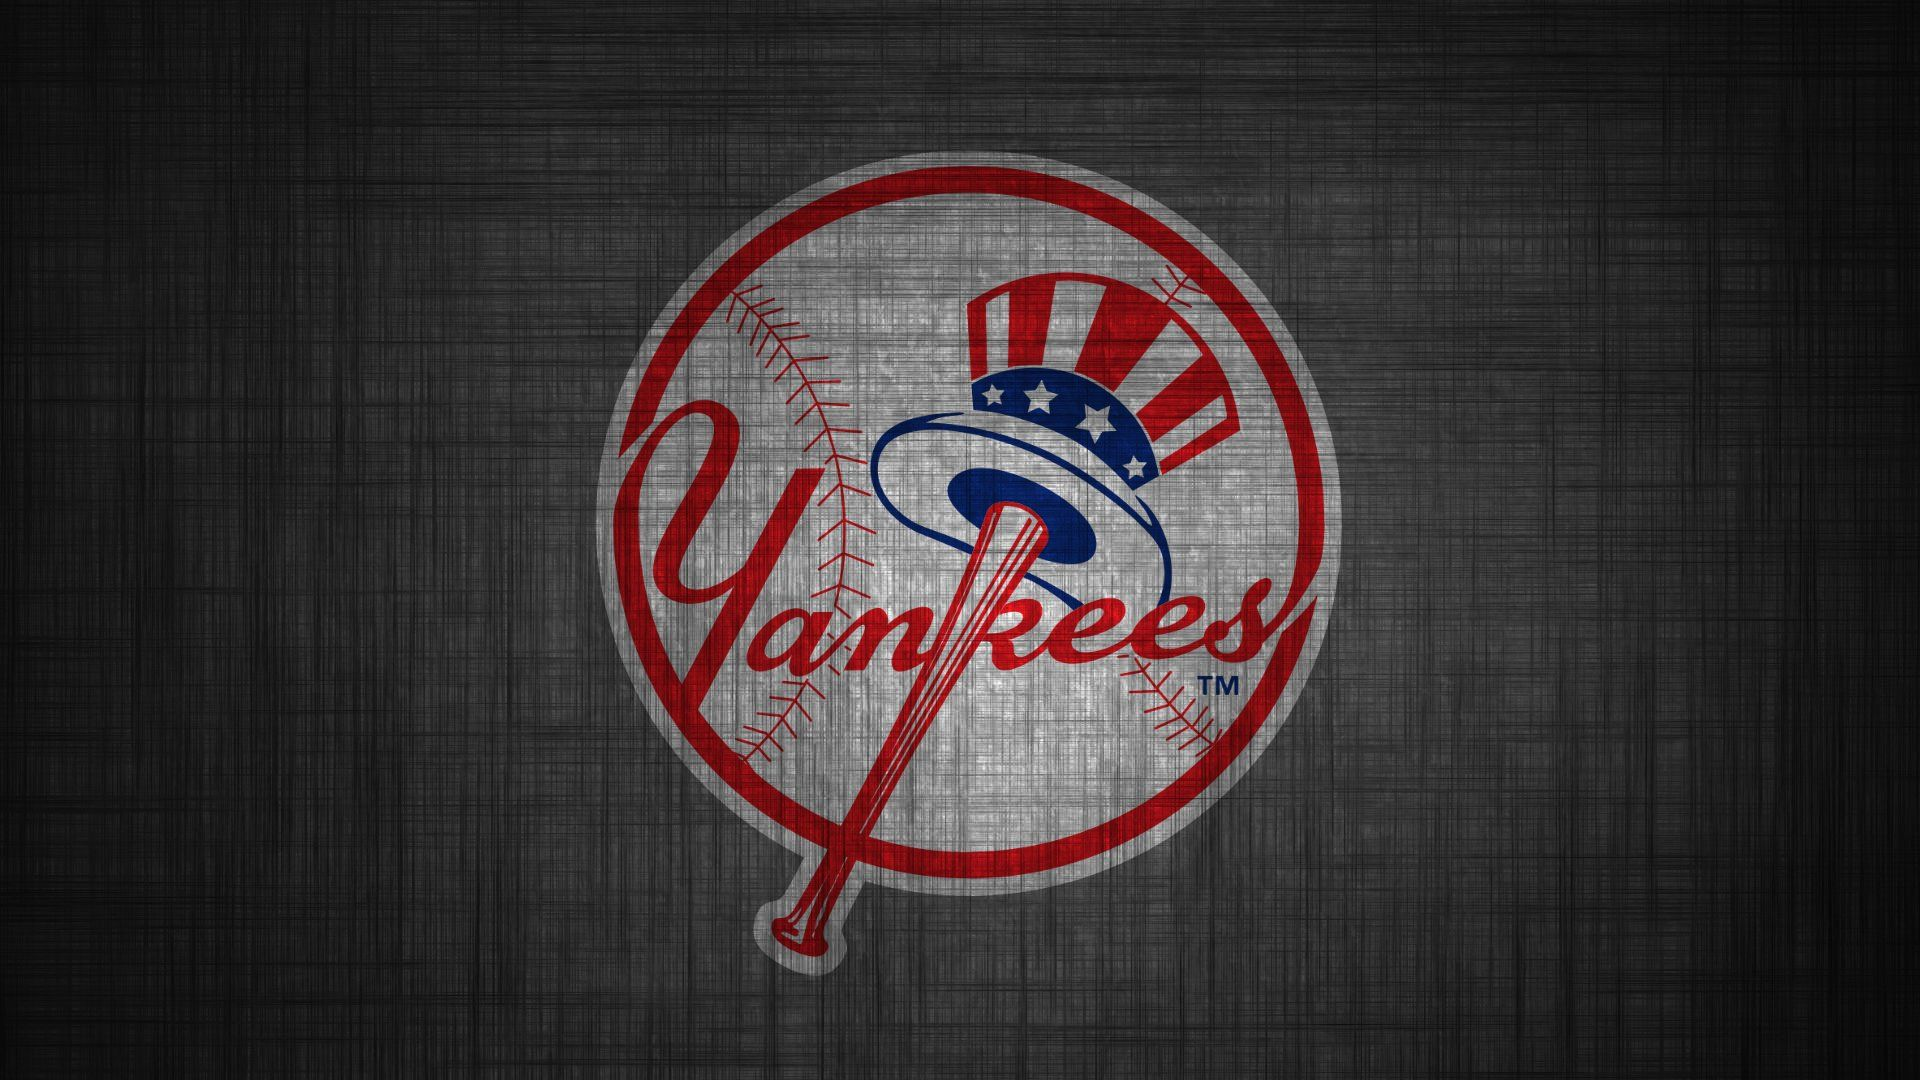 New York Yankees Wallpaper HD